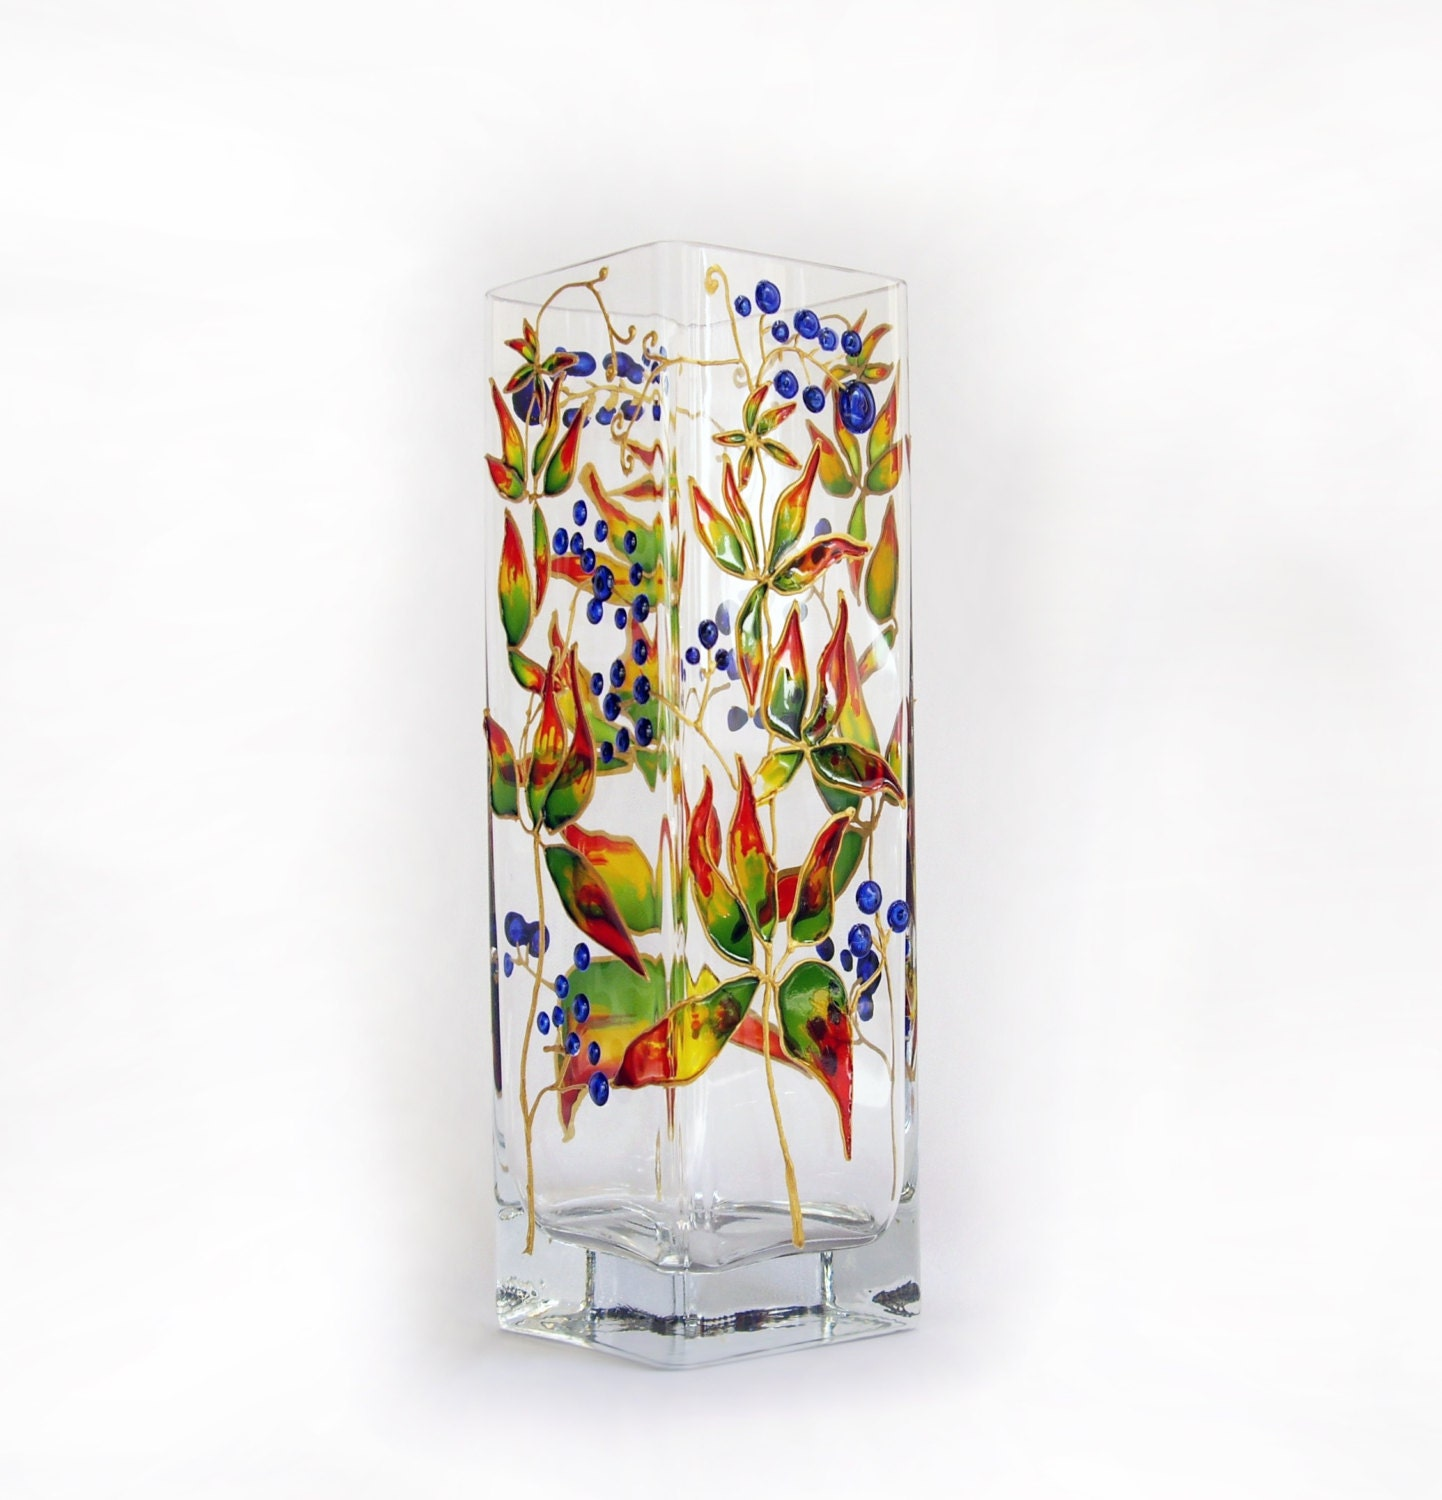 Painted Glass Vase Colorful vases Small glass vases Art glass